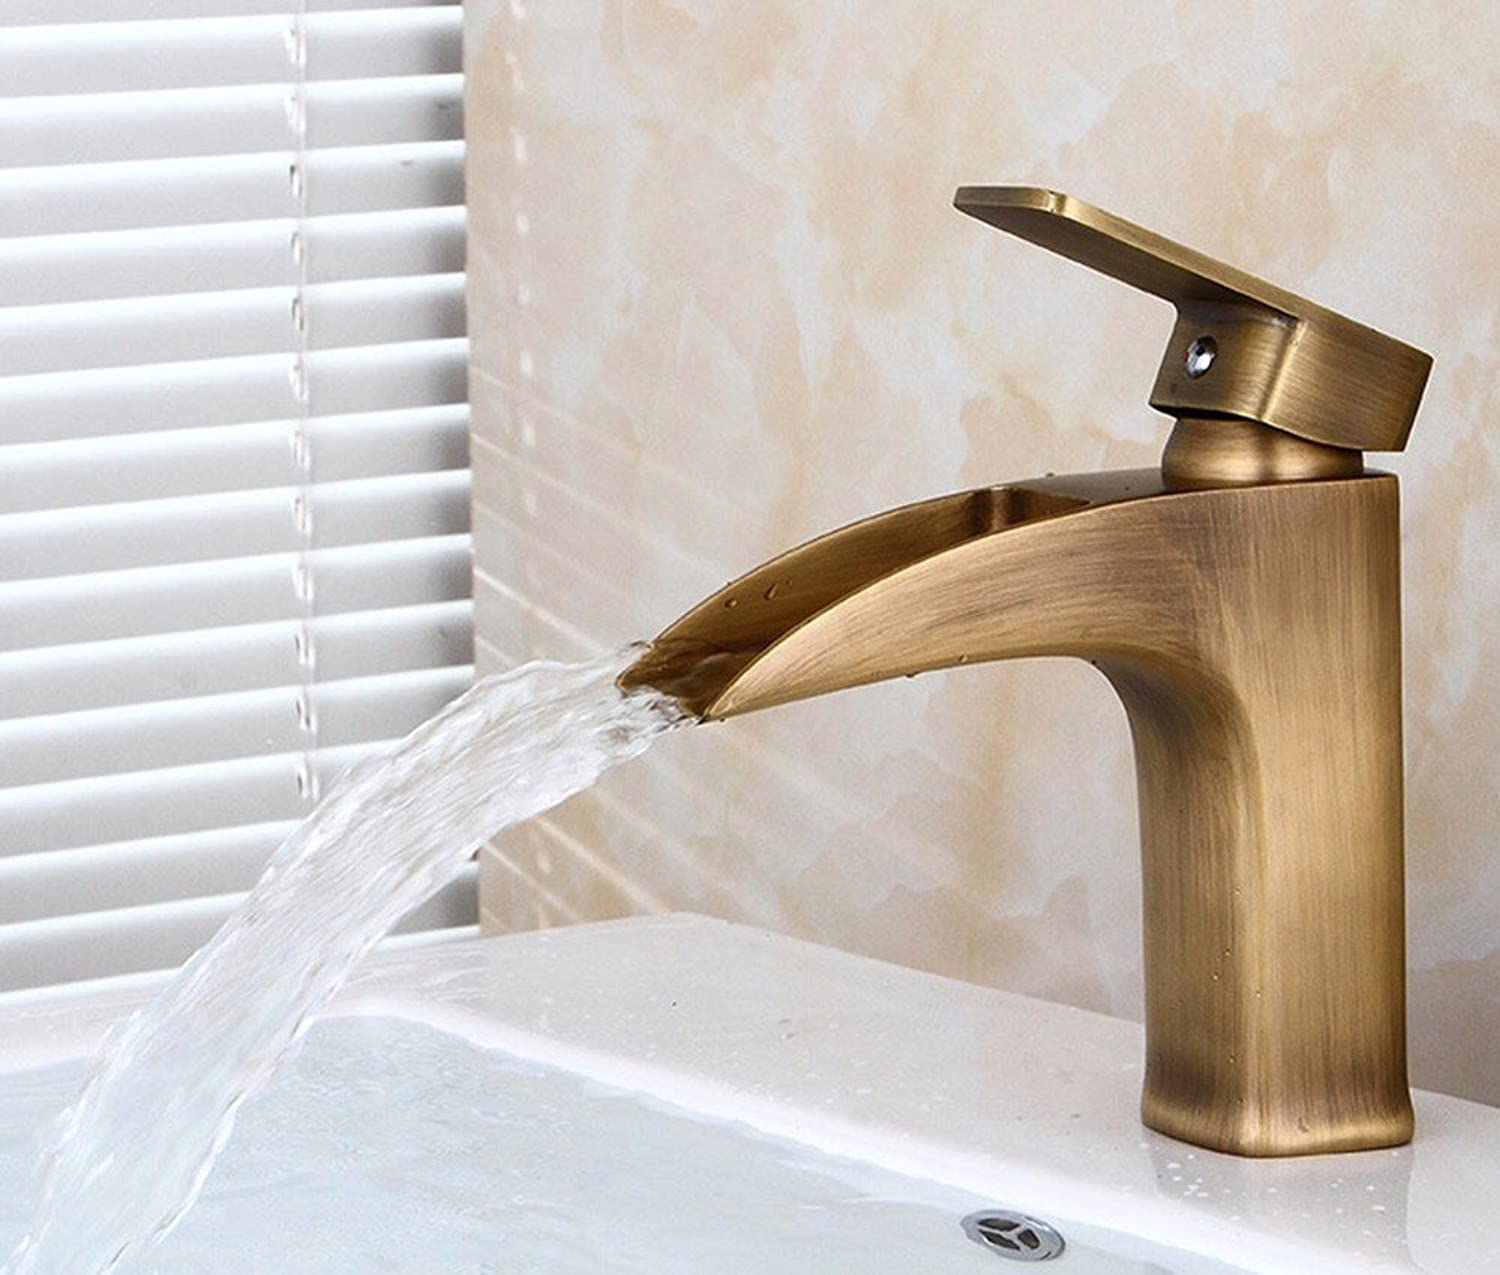 AWXJX copper Hot and cold Wash your face bathroom bathroom Sink faucet